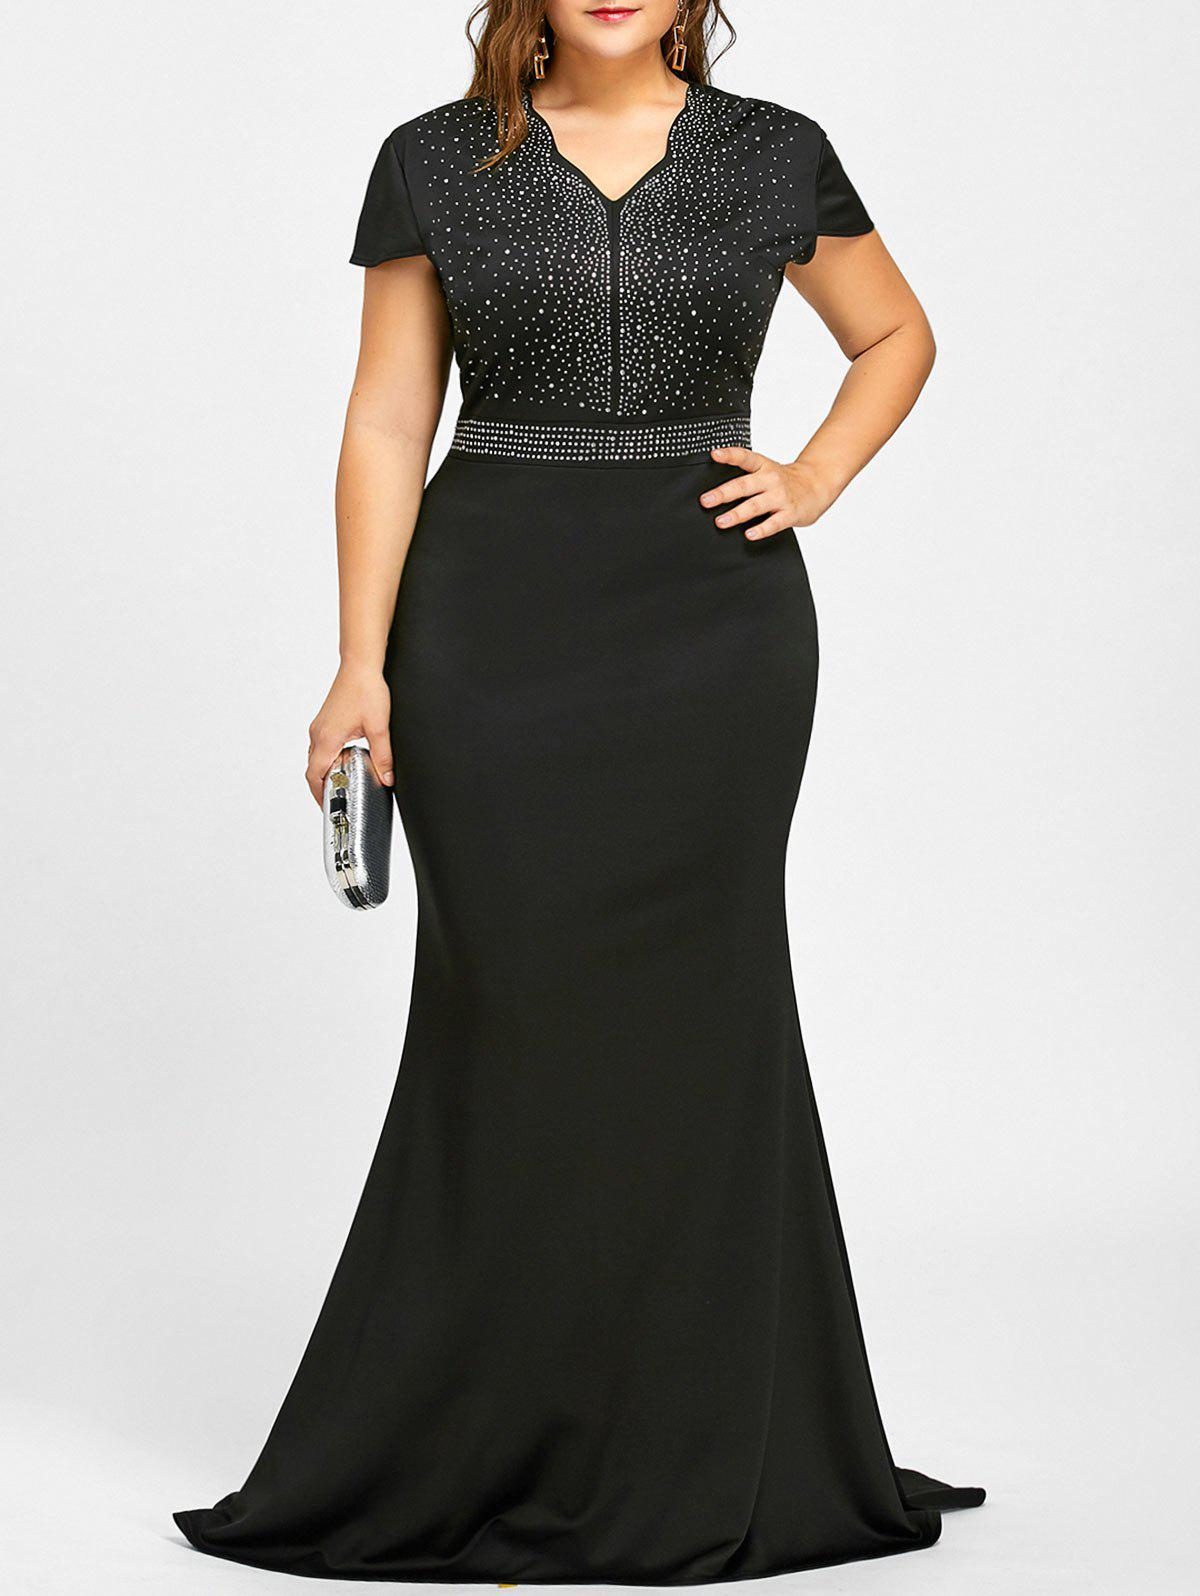 Rhinestone Maxi Plus Size Formal DressWOMEN<br><br>Size: 2XL; Color: BLACK; Style: Casual; Material: Cotton,Polyester; Silhouette: Asymmetrical; Dresses Length: Floor-Length; Neckline: V-Neck; Sleeve Type: Cap Sleeve; Sleeve Length: Short Sleeves; Embellishment: Rhinestone; Pattern Type: Solid; With Belt: No; Season: Fall,Spring,Summer,Winter; Weight: 0.6700kg; Package Contents: 1 x Dress;